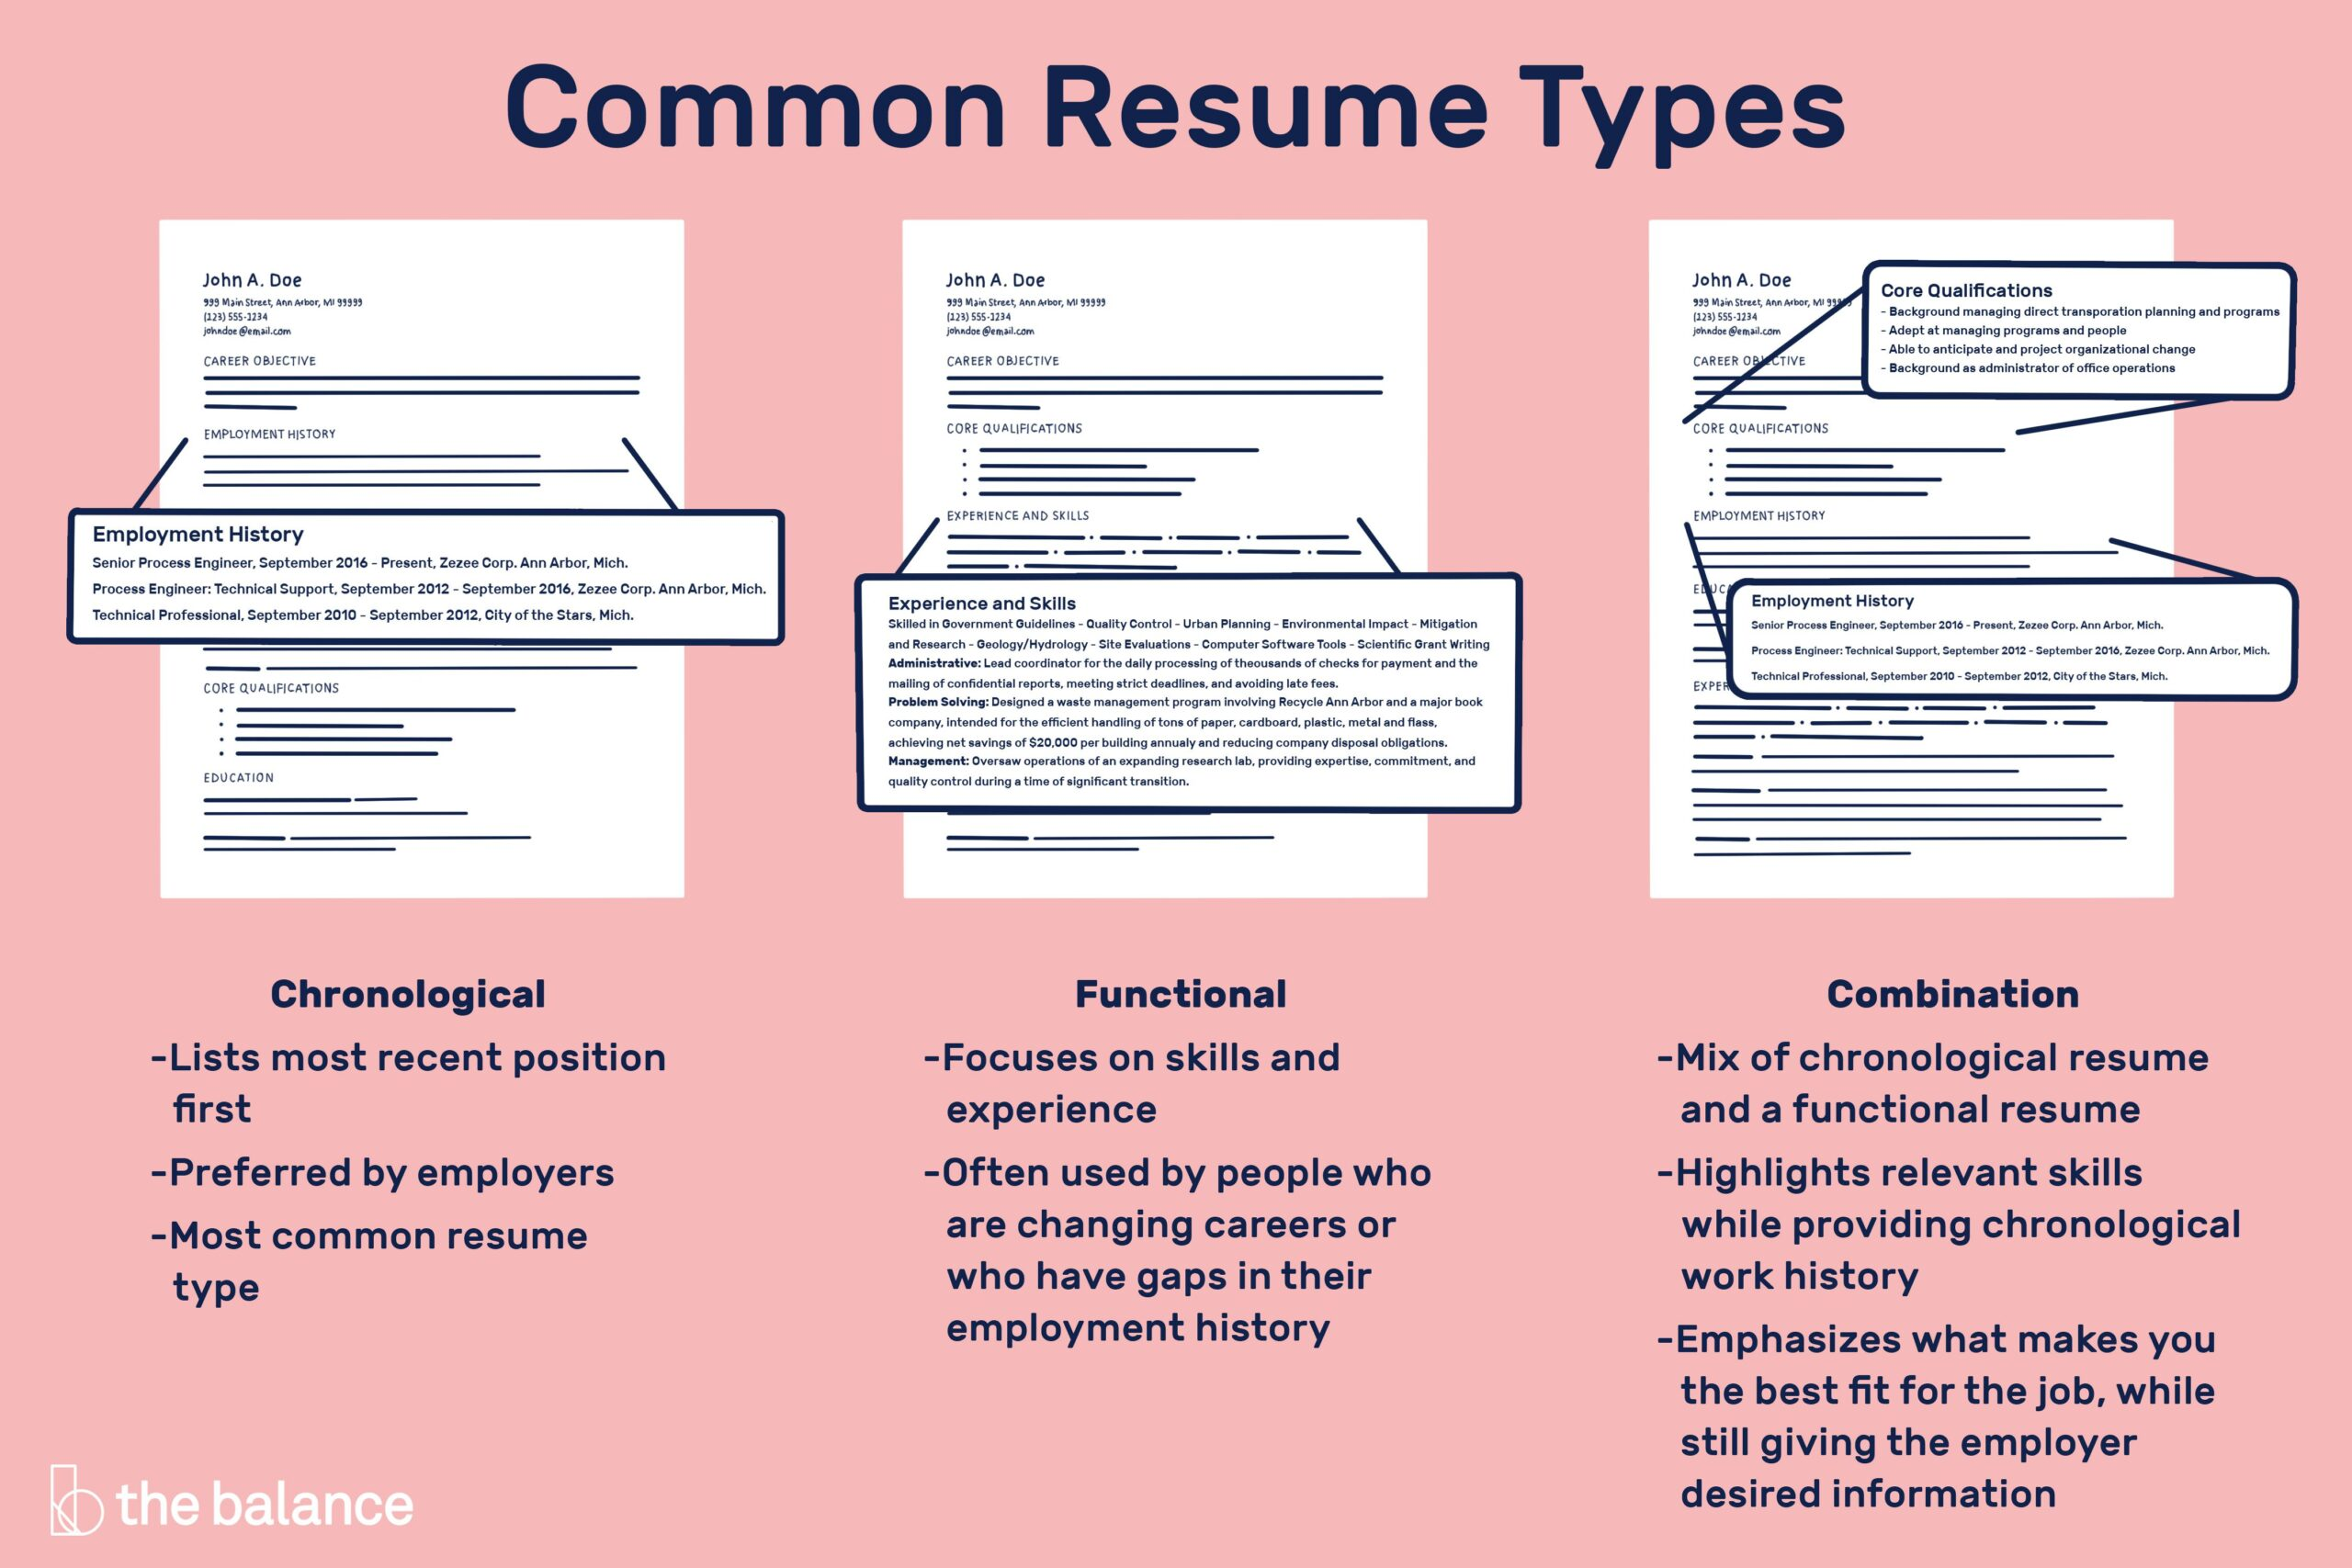 different resume types examples chronological functional combination 2063235v4 investment Resume Different Resume Examples